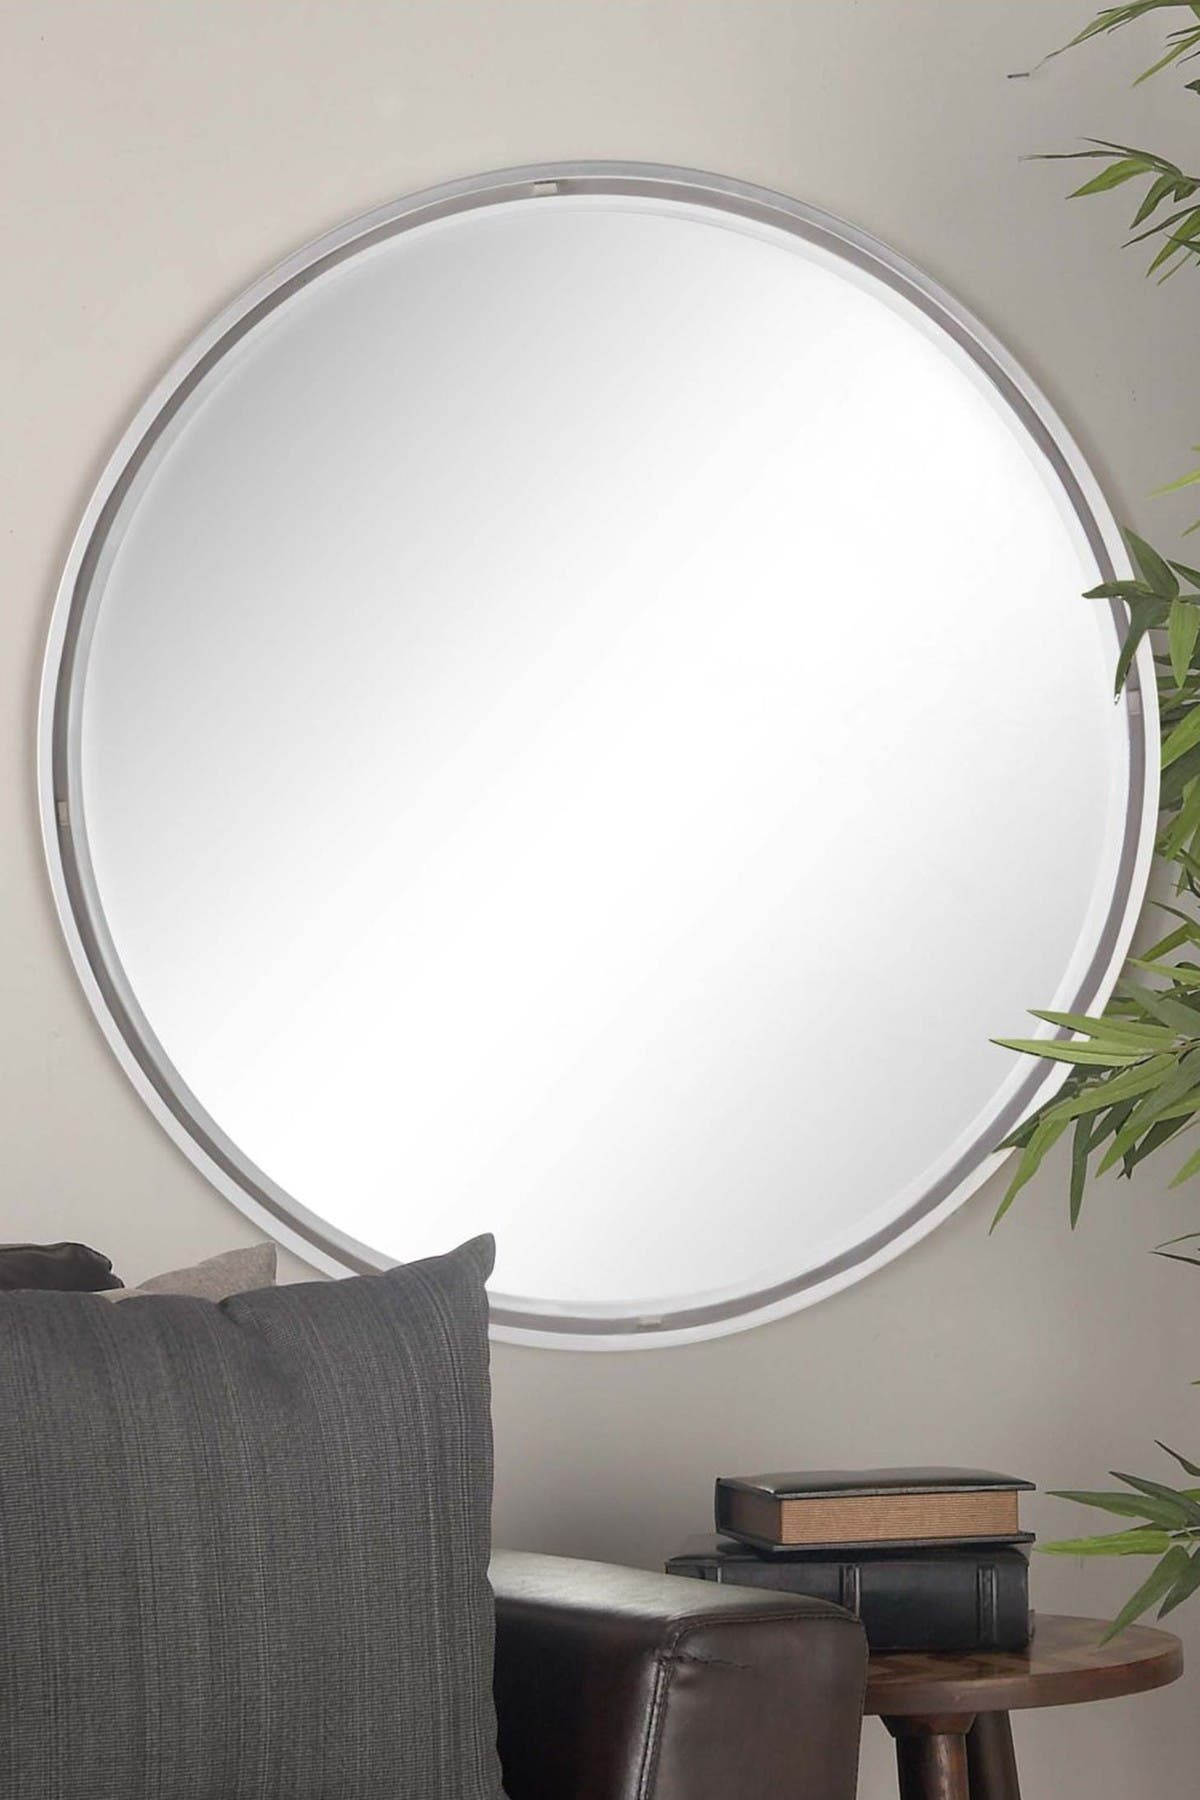 Image of CosmoLiving by Cosmopolitan Mirror/Gray Contemporary Round Wall Mirror